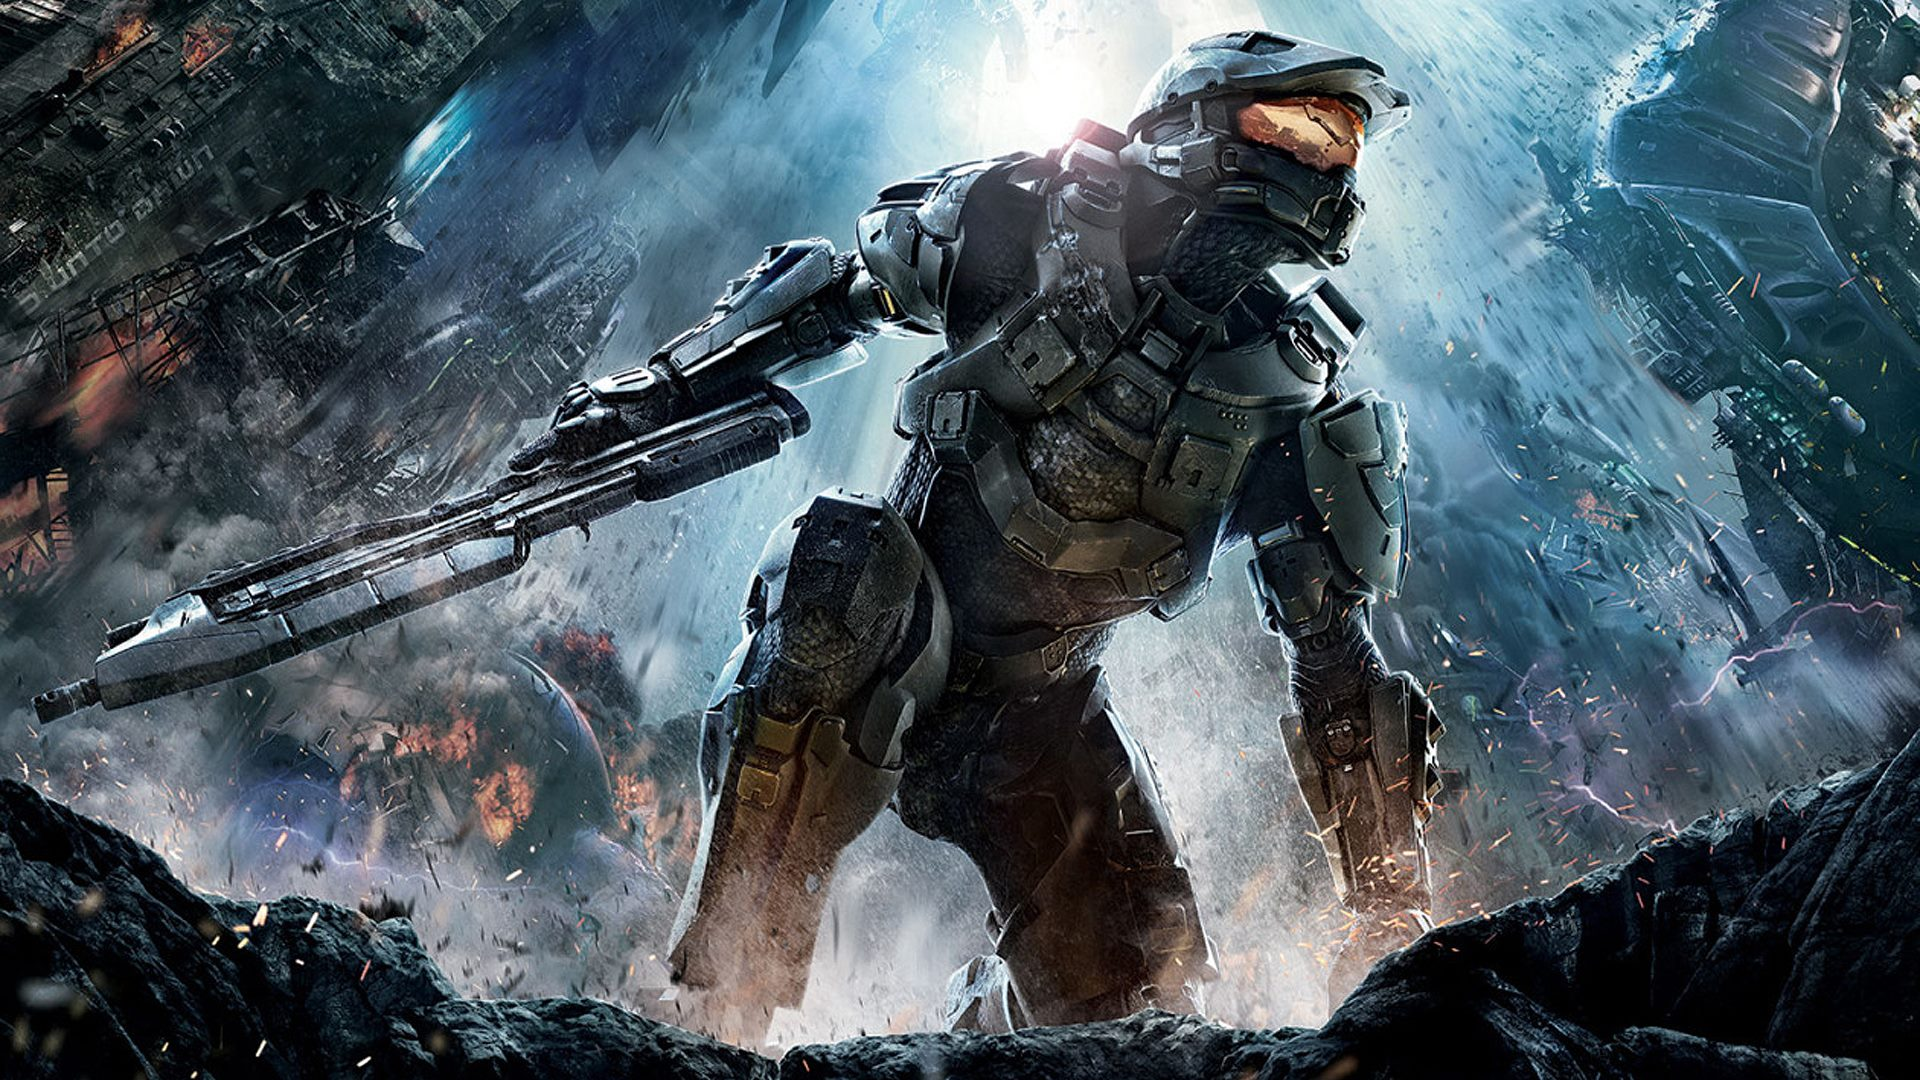 Is Halo Still Popular?